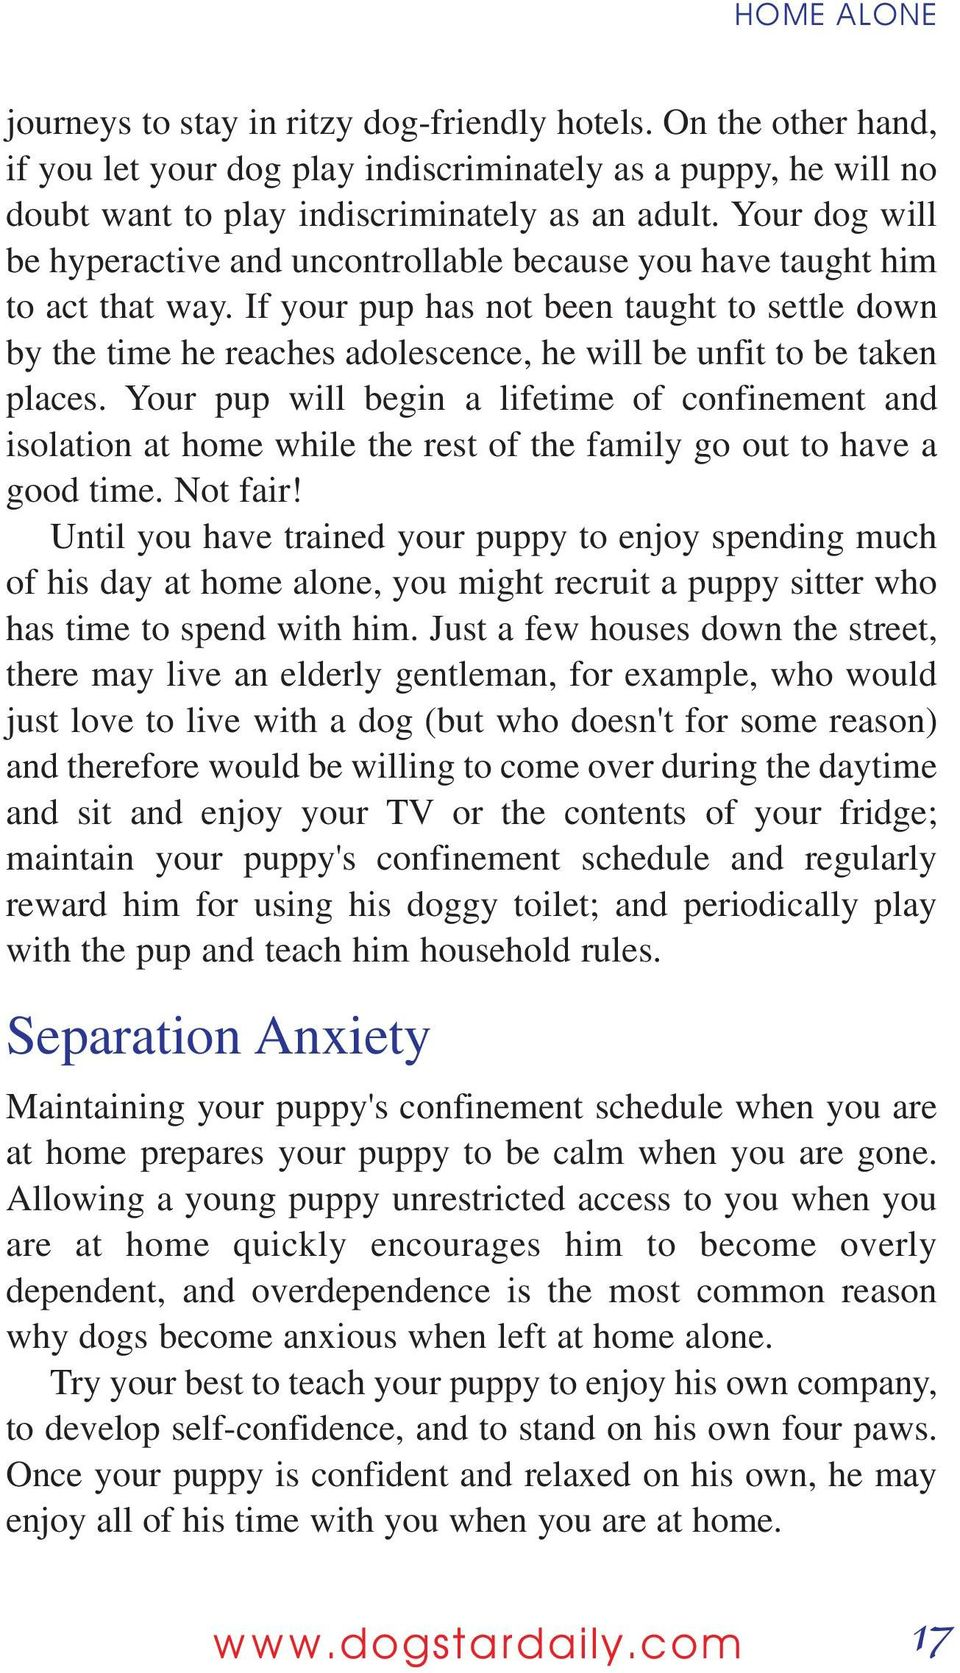 If your pup has not been taught to settle down by the time he reaches adolescence, he will be unfit to be taken places.